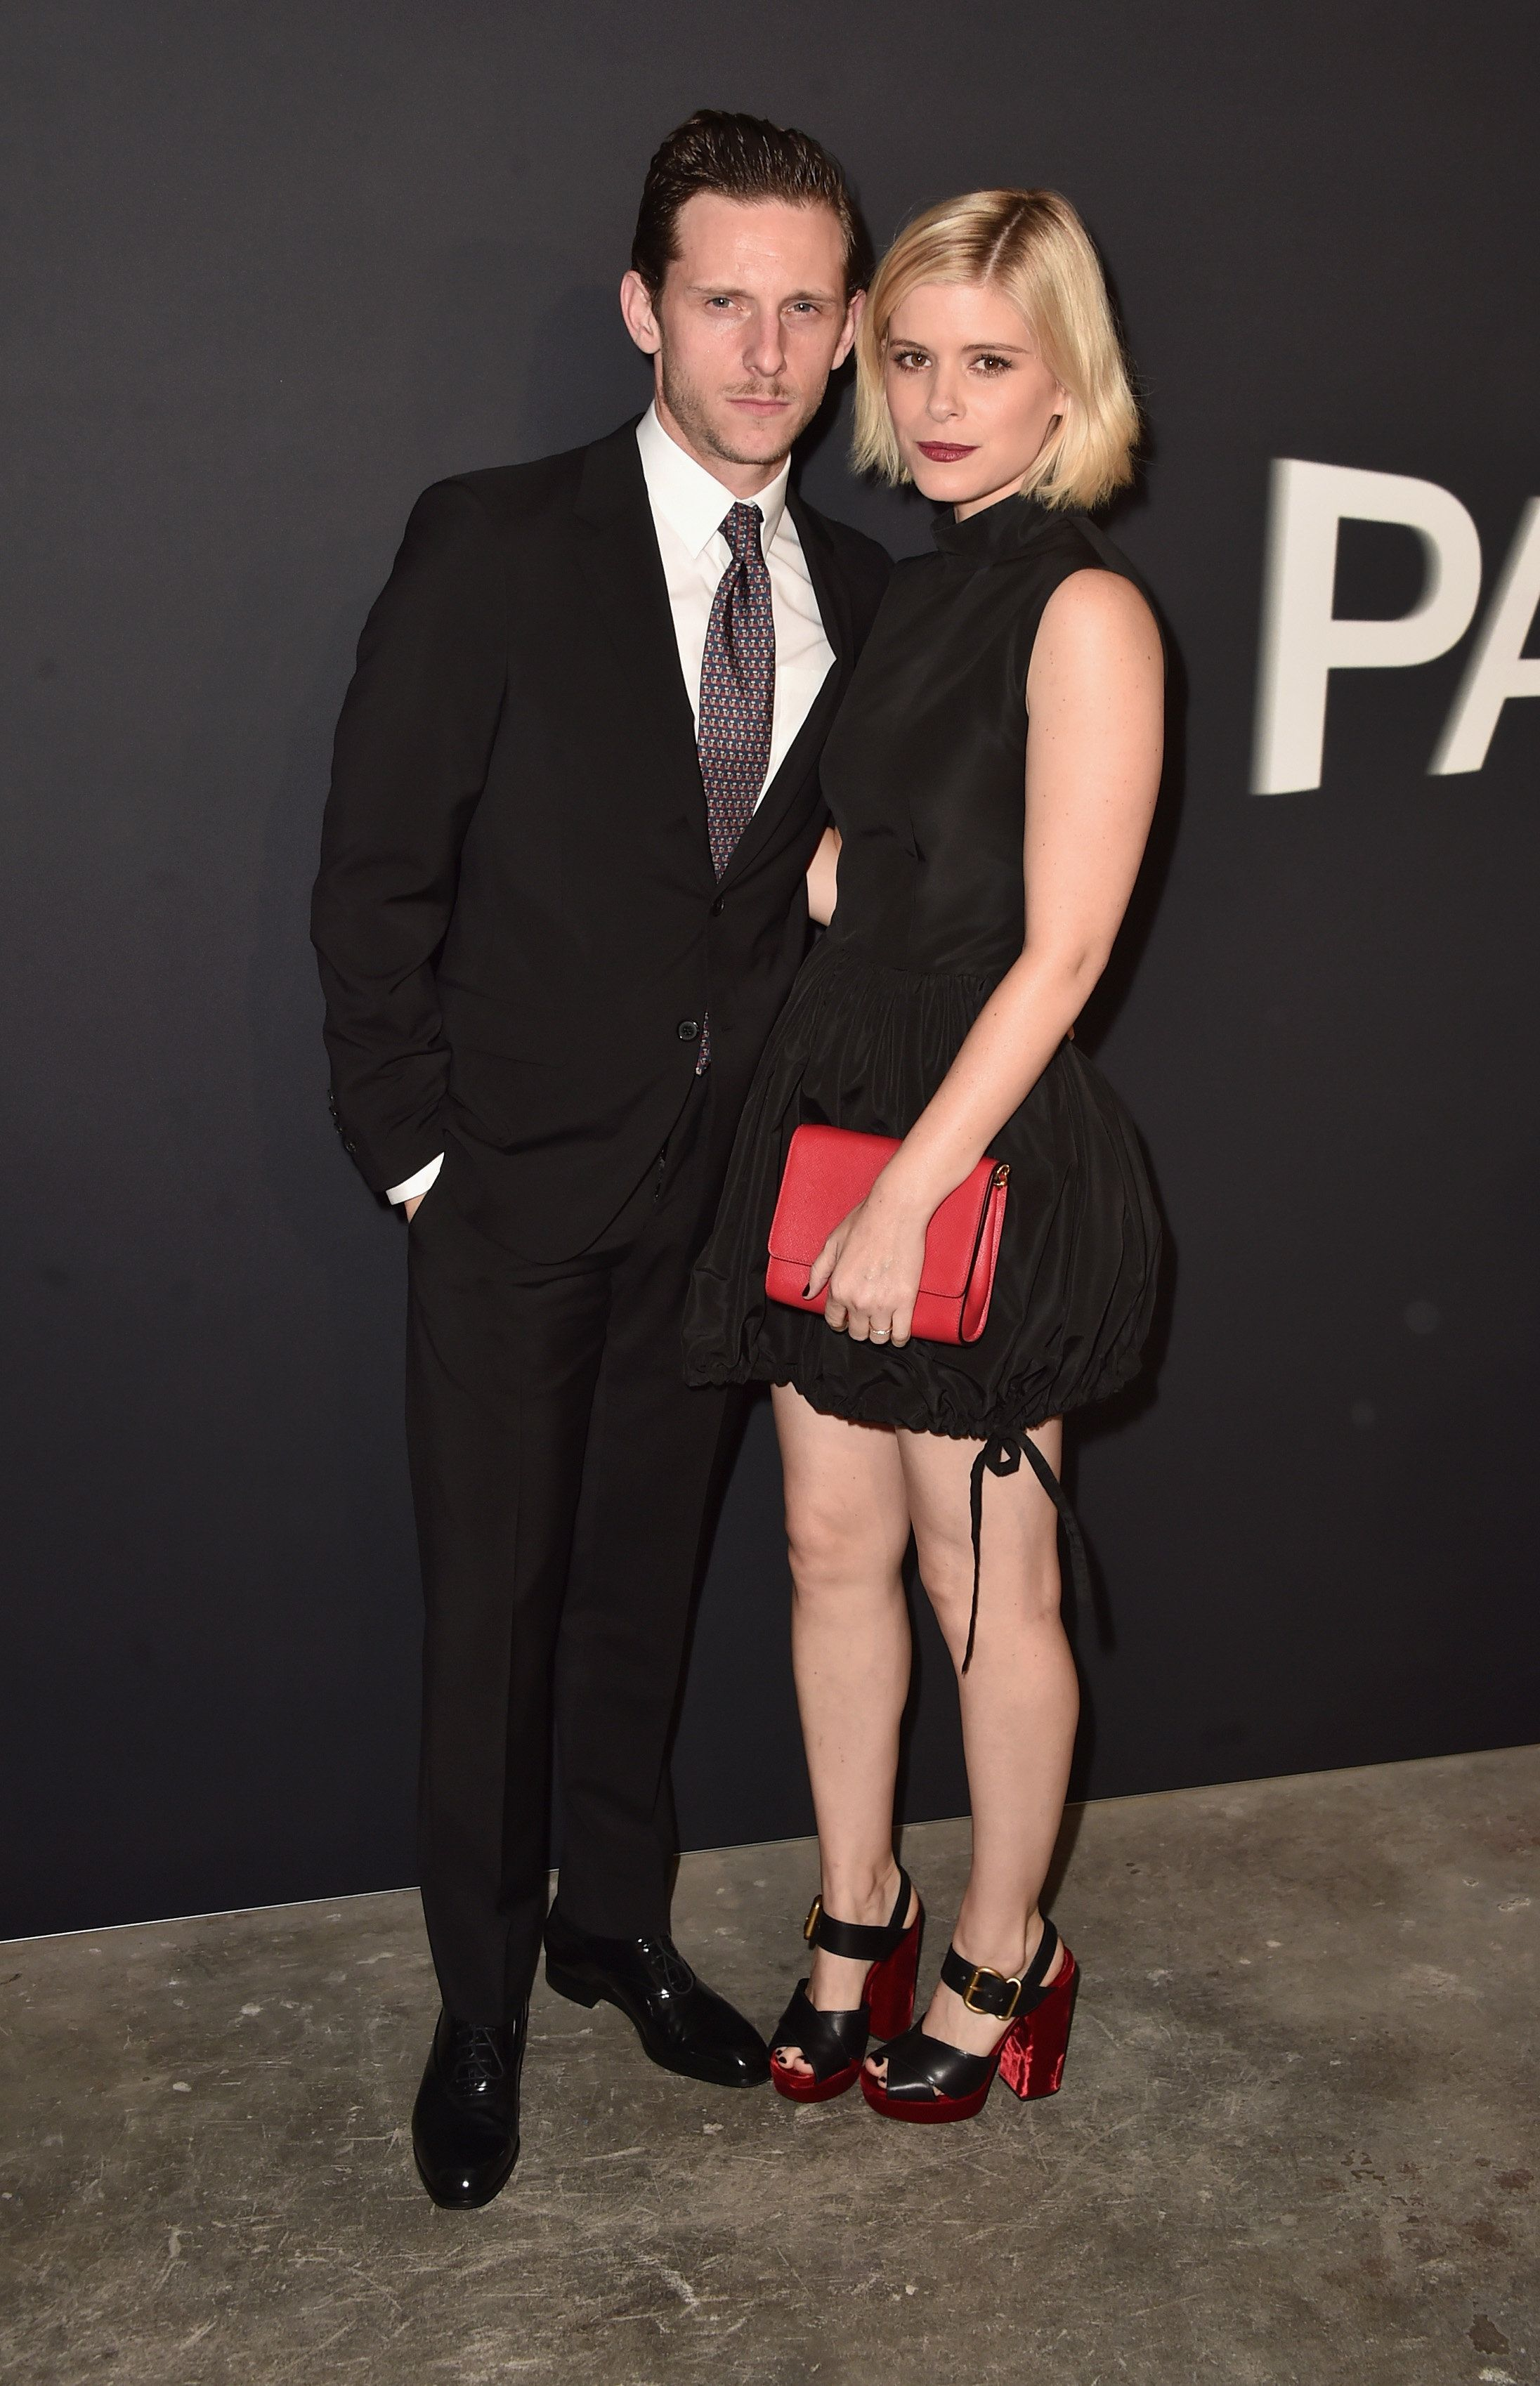 LOS ANGELES, CA - NOVEMBER 15: Actors Jamie Bell (L) and Kate Mara attend the premiere of 'Past Forward', a movie by David O. Russell presented by Prada on November 15, 2016 at Hauser Wirth Schimmel Gallery in Los Angeles, California.  (Photo by Alberto E. Rodriguez/Getty Images)